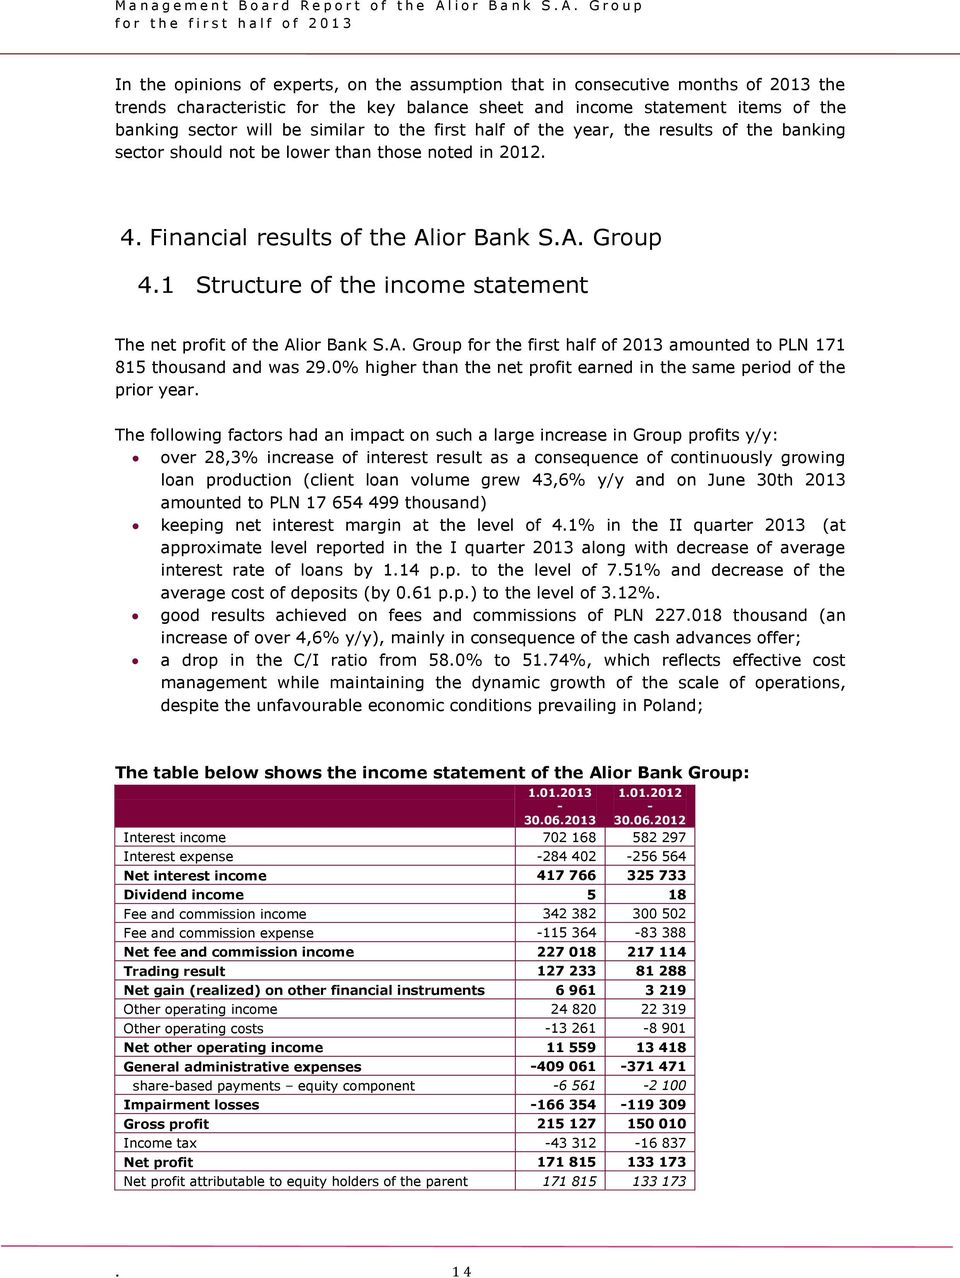 1 Structure of the income statement The net profit of the Alior Bank S.A. Group for the first half of 2013 amounted to PLN 171 815 thousand and was 29.